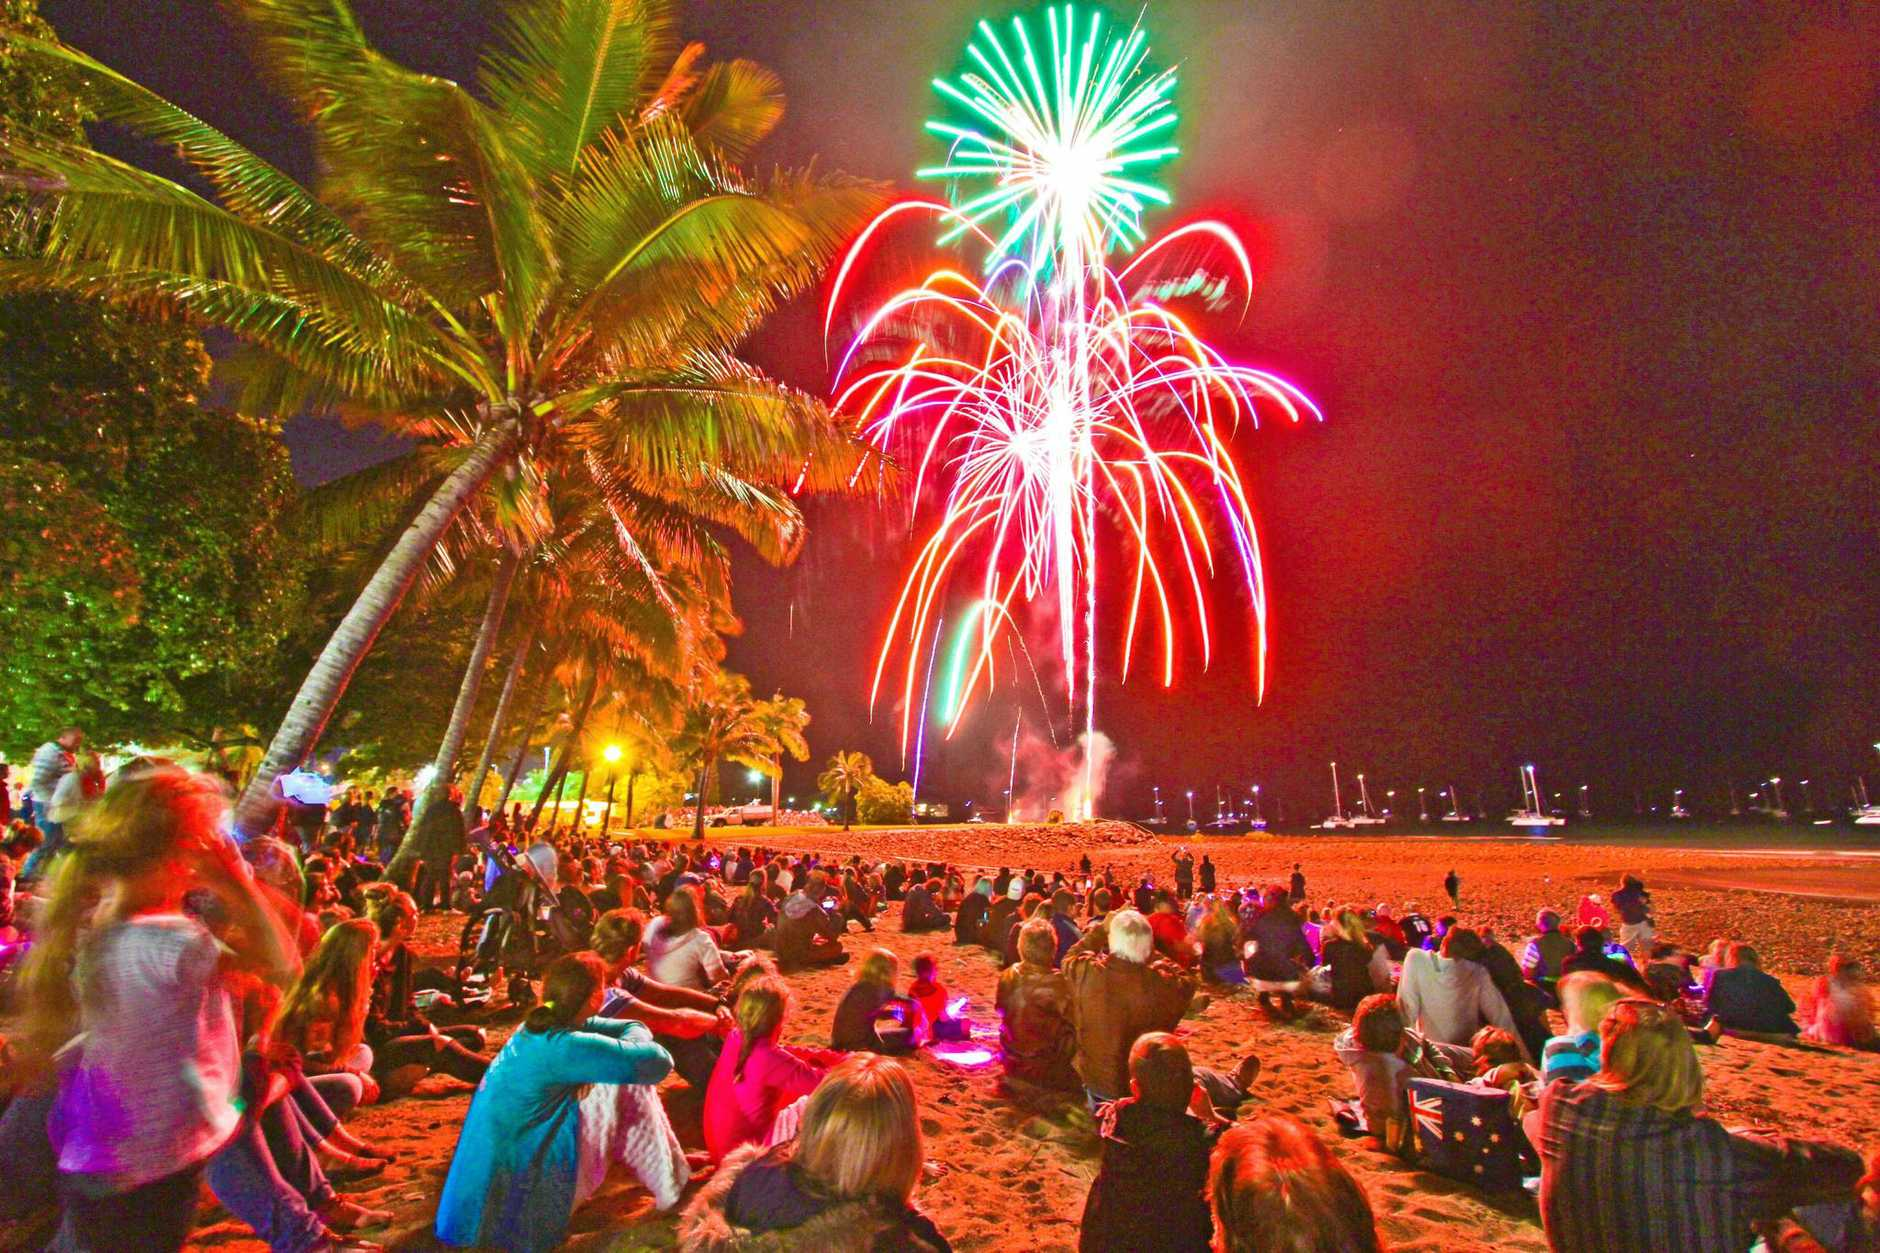 LIGHT THE SKY: Thanks to a generous donation, the Fireworks on the Foreshore will go ahead at this year's Whitsunday Reef Festival.